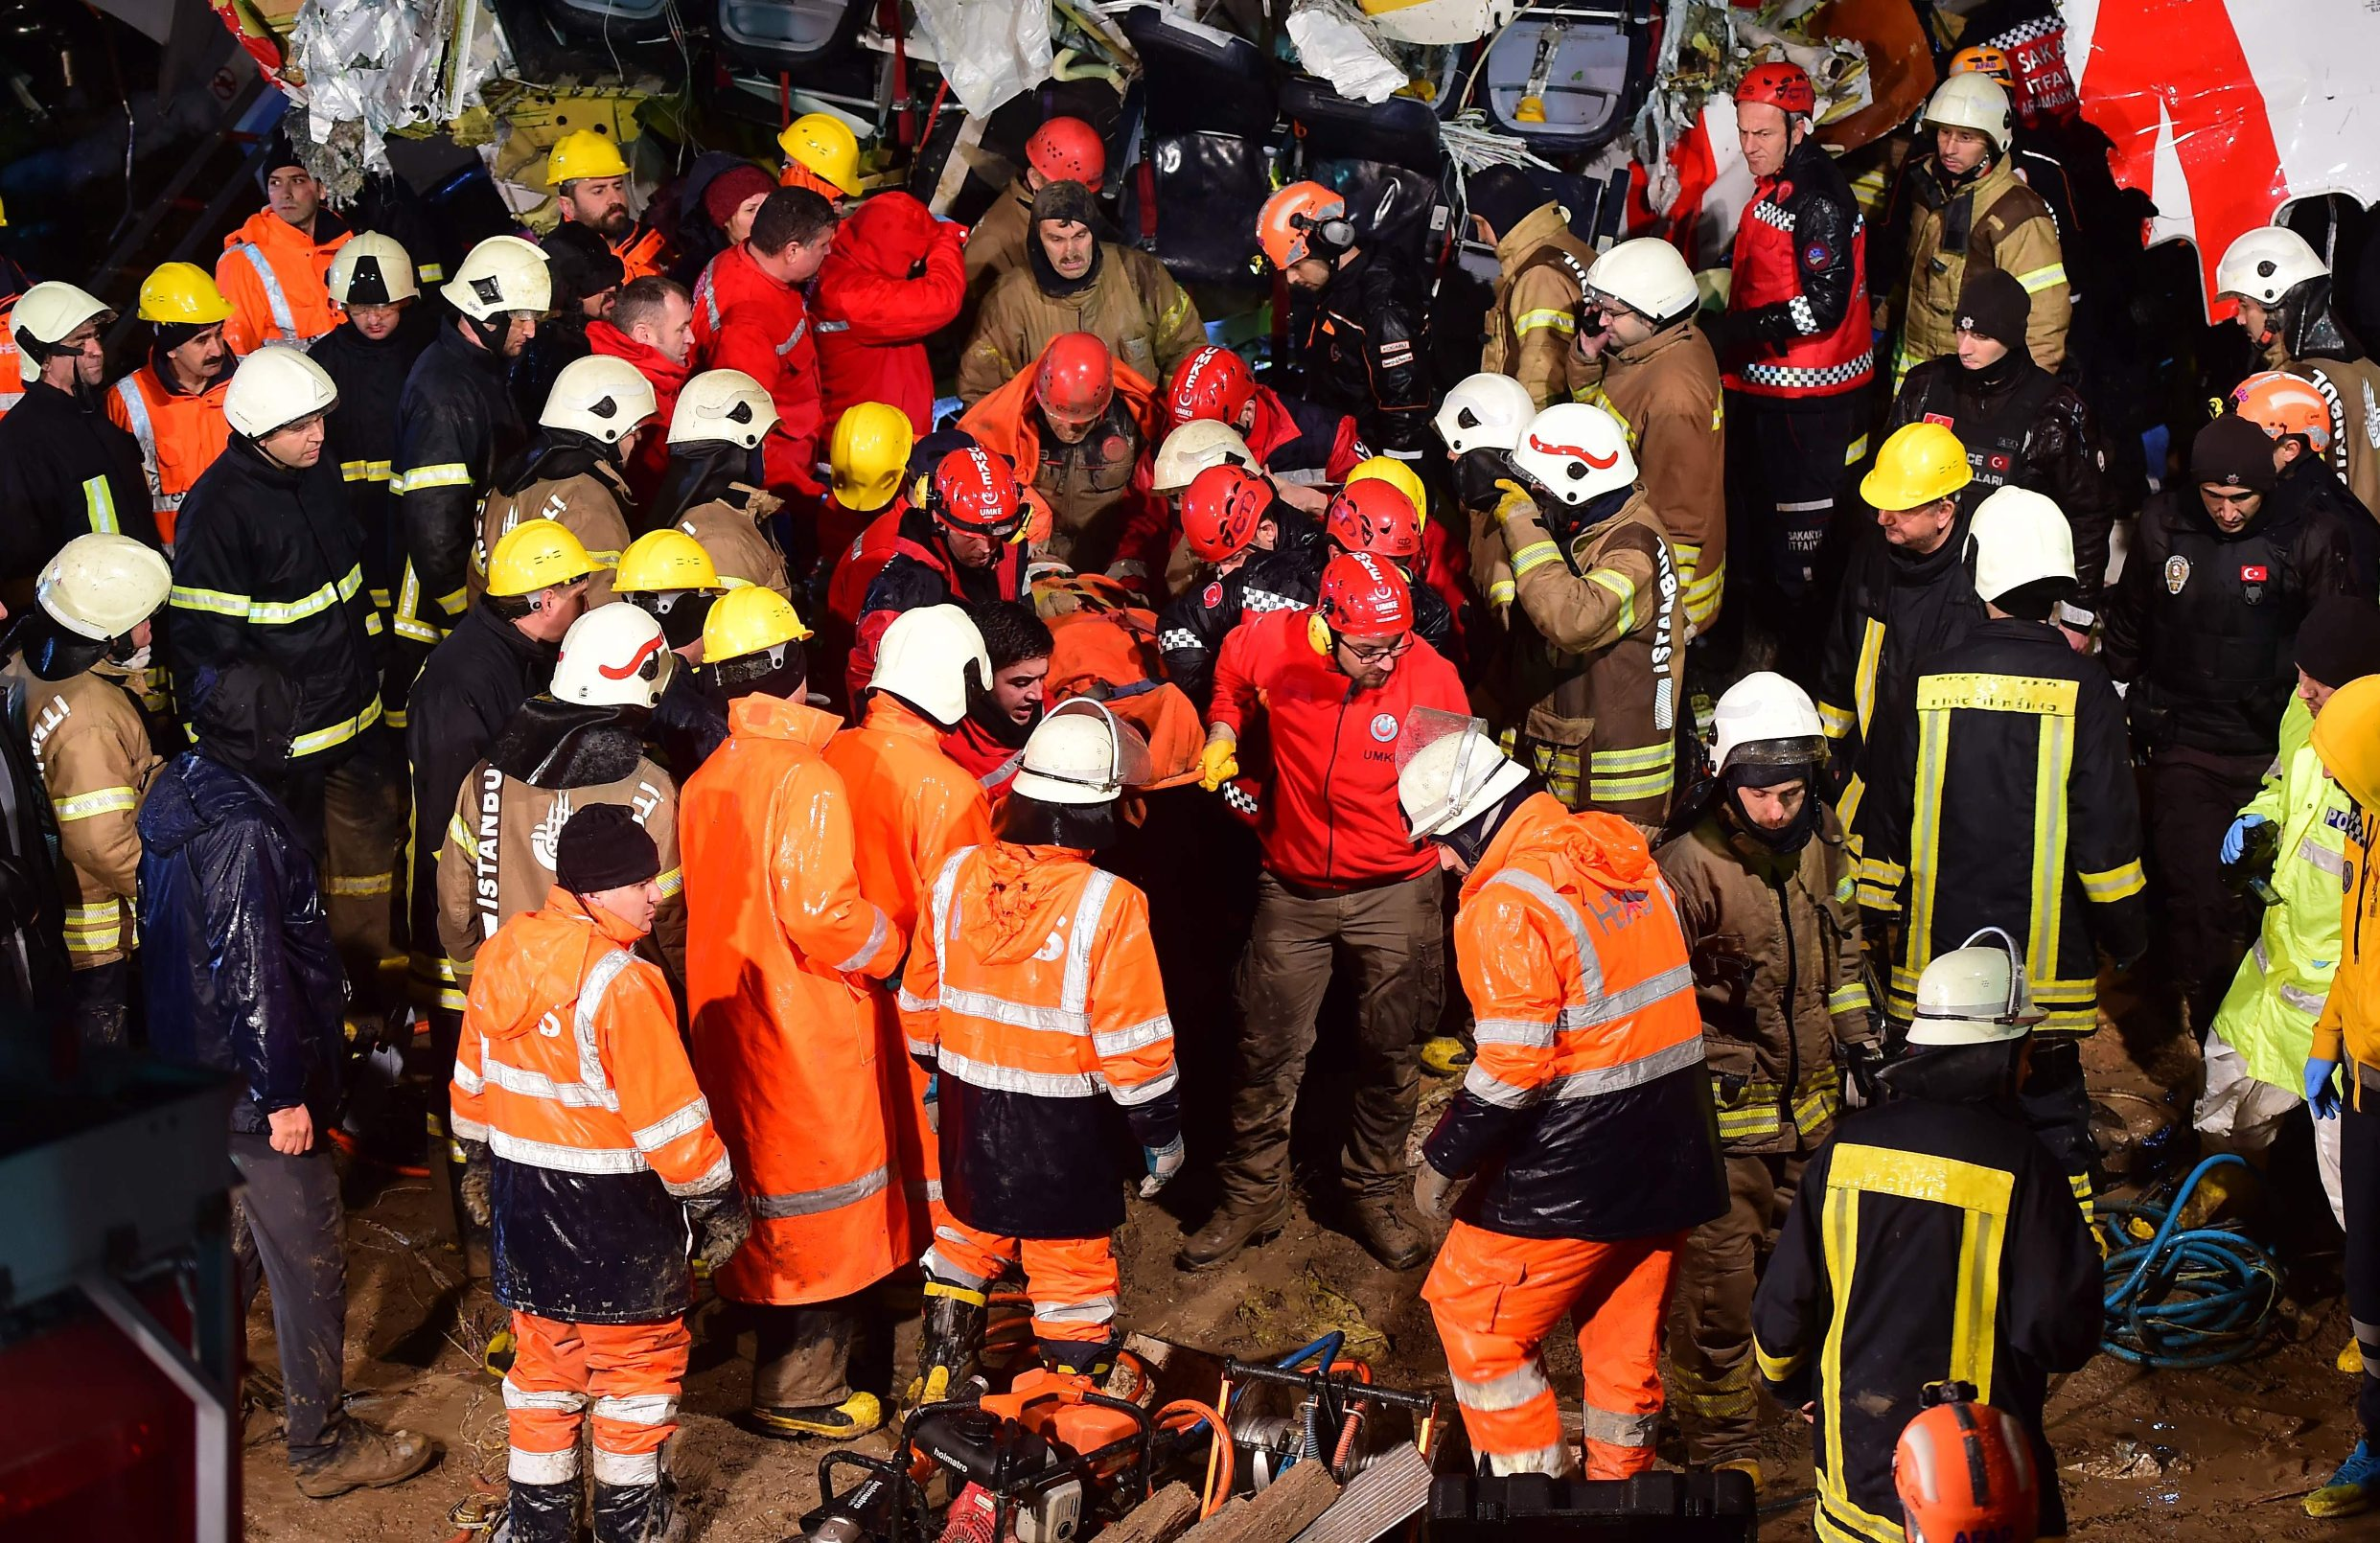 Rescuers carry a person extracted from the crash of a Pegasus Airlines Boeing 737 airplane, after it skidded off the runway upon landing at Sabiha Gokcen airport in Istanbul on February 5, 2020. - The plane carrying 171 passengers from the Aegean port city of Izmir split into three after landing in rough weather. Officials said no-one had lost their lives in the accident, but dozens of people were injured. (Photo by Yasin AKGUL / AFP)